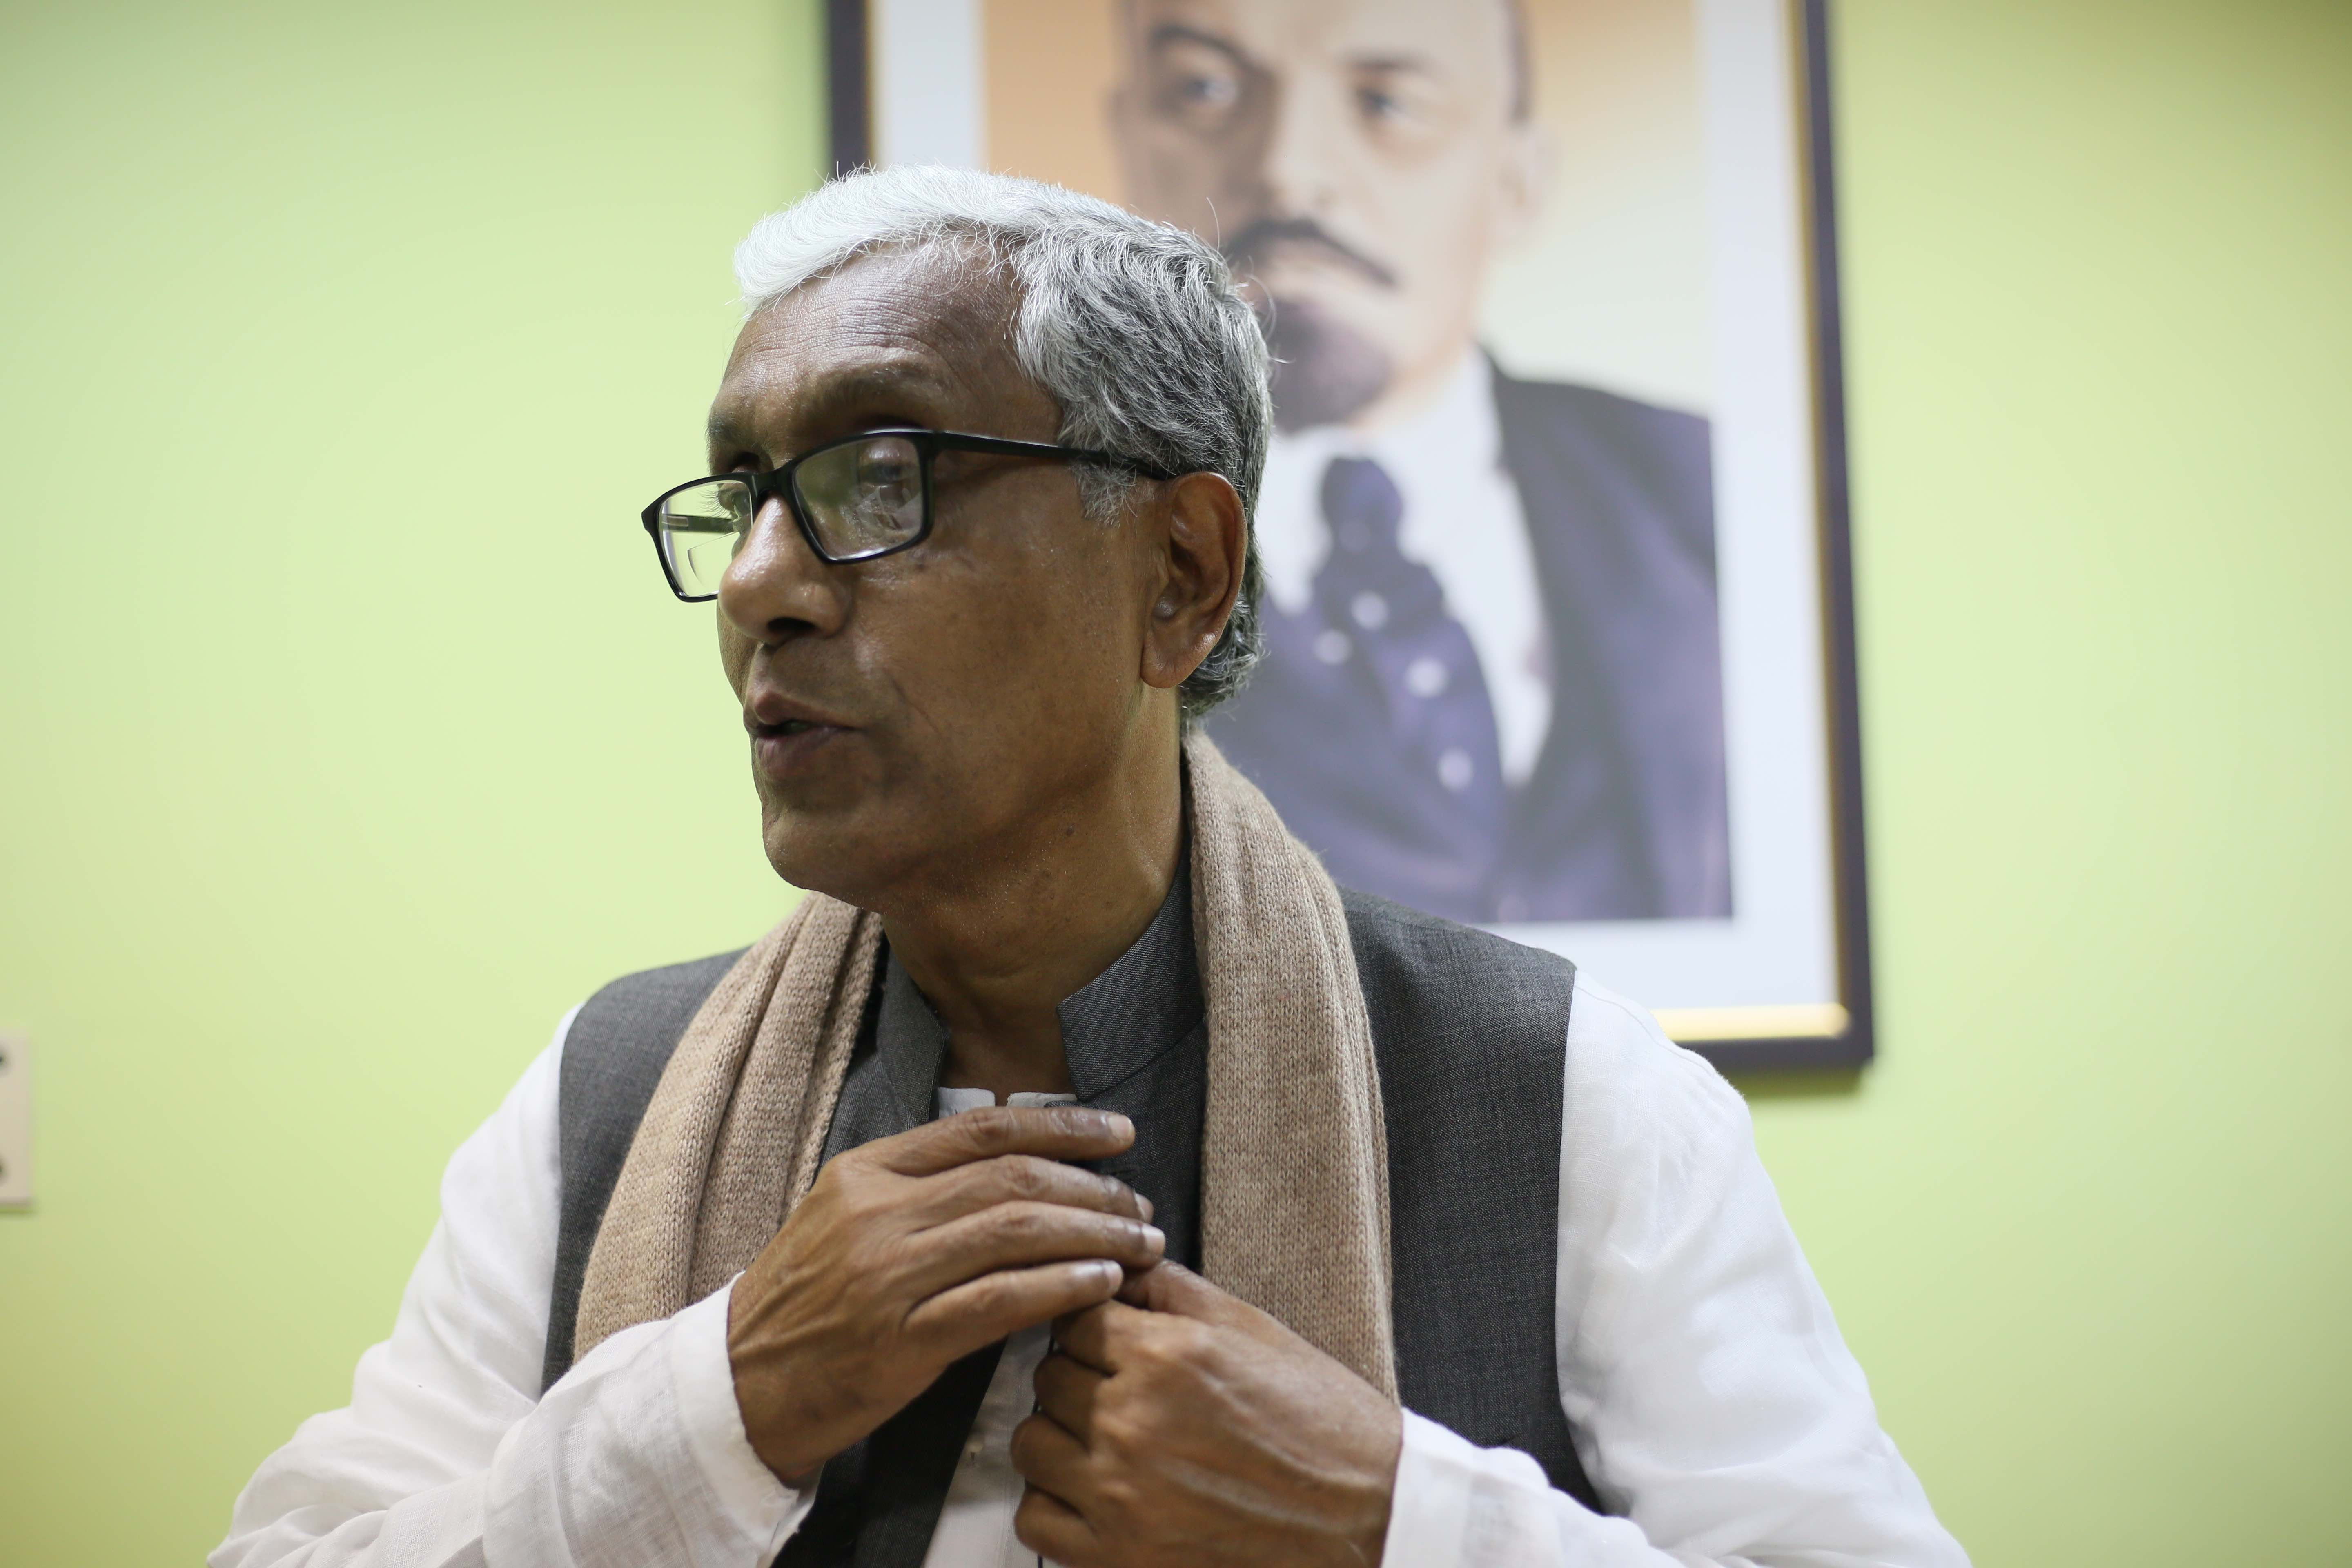 Tripura chief minister Manik Sarkar. Credit: The Wire